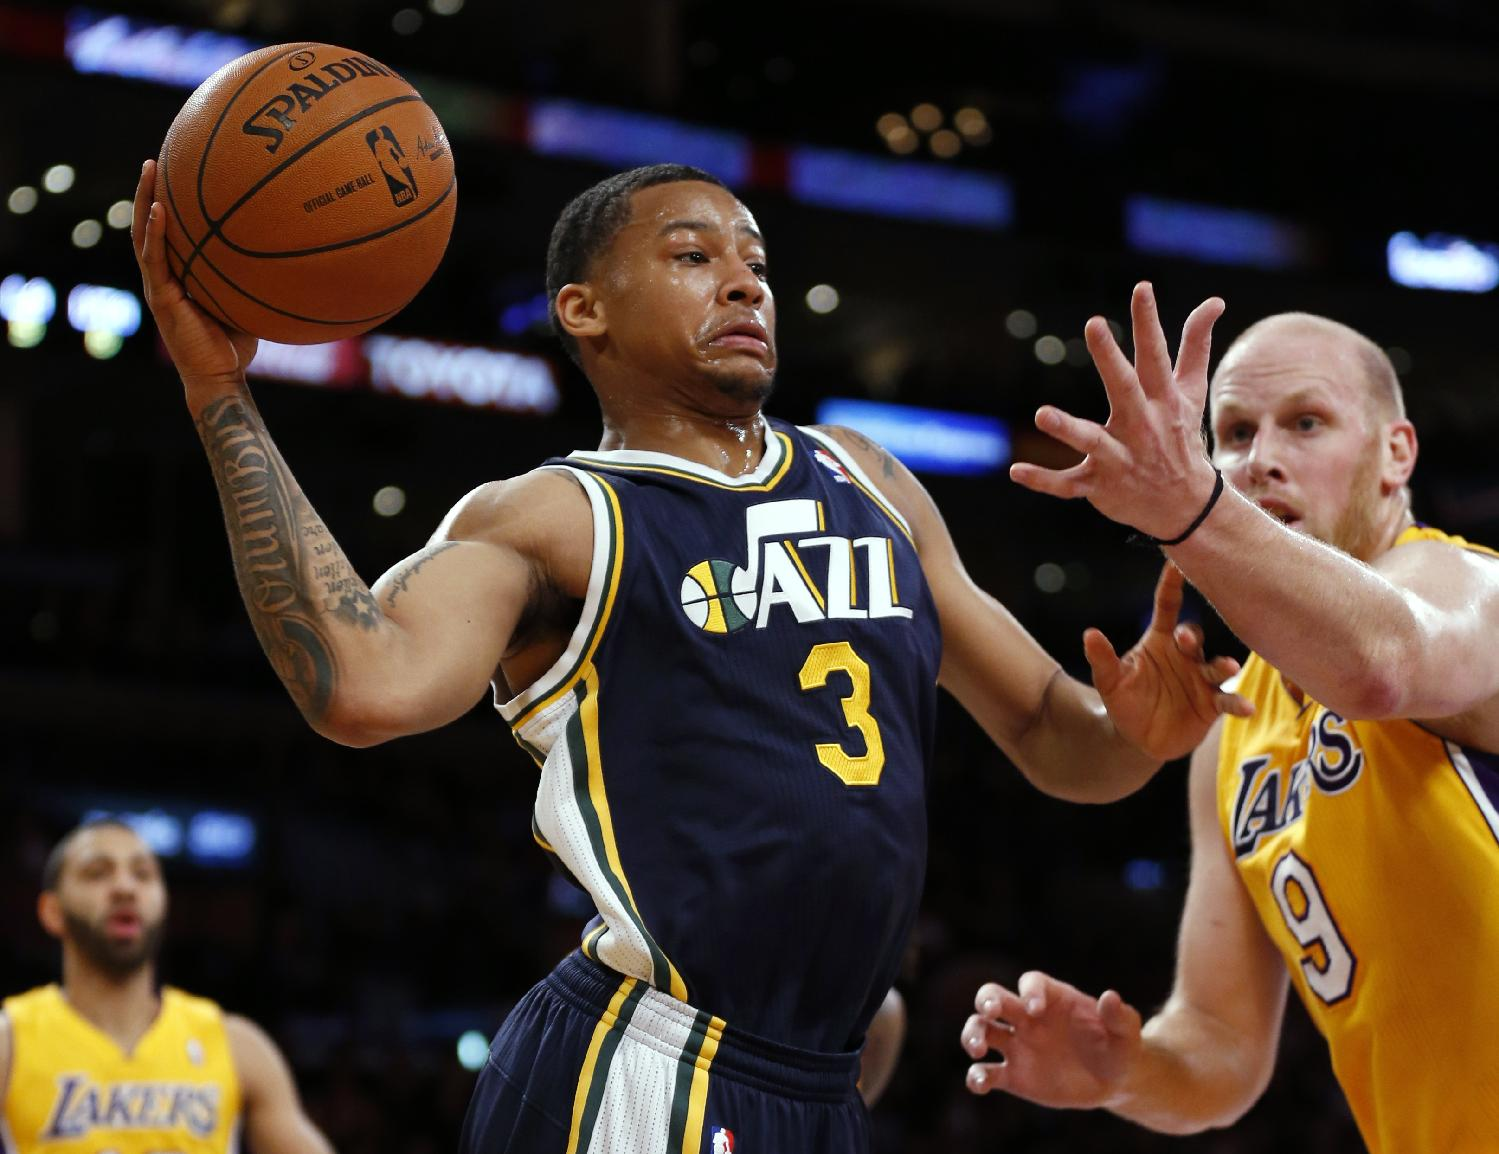 Utah Jazz's Trey Burke, left, passes around Los Angeles Lakers' Chris Kaman during the first half of an NBA basketball game in Los Angeles, Tuesday, Feb. 11, 2014